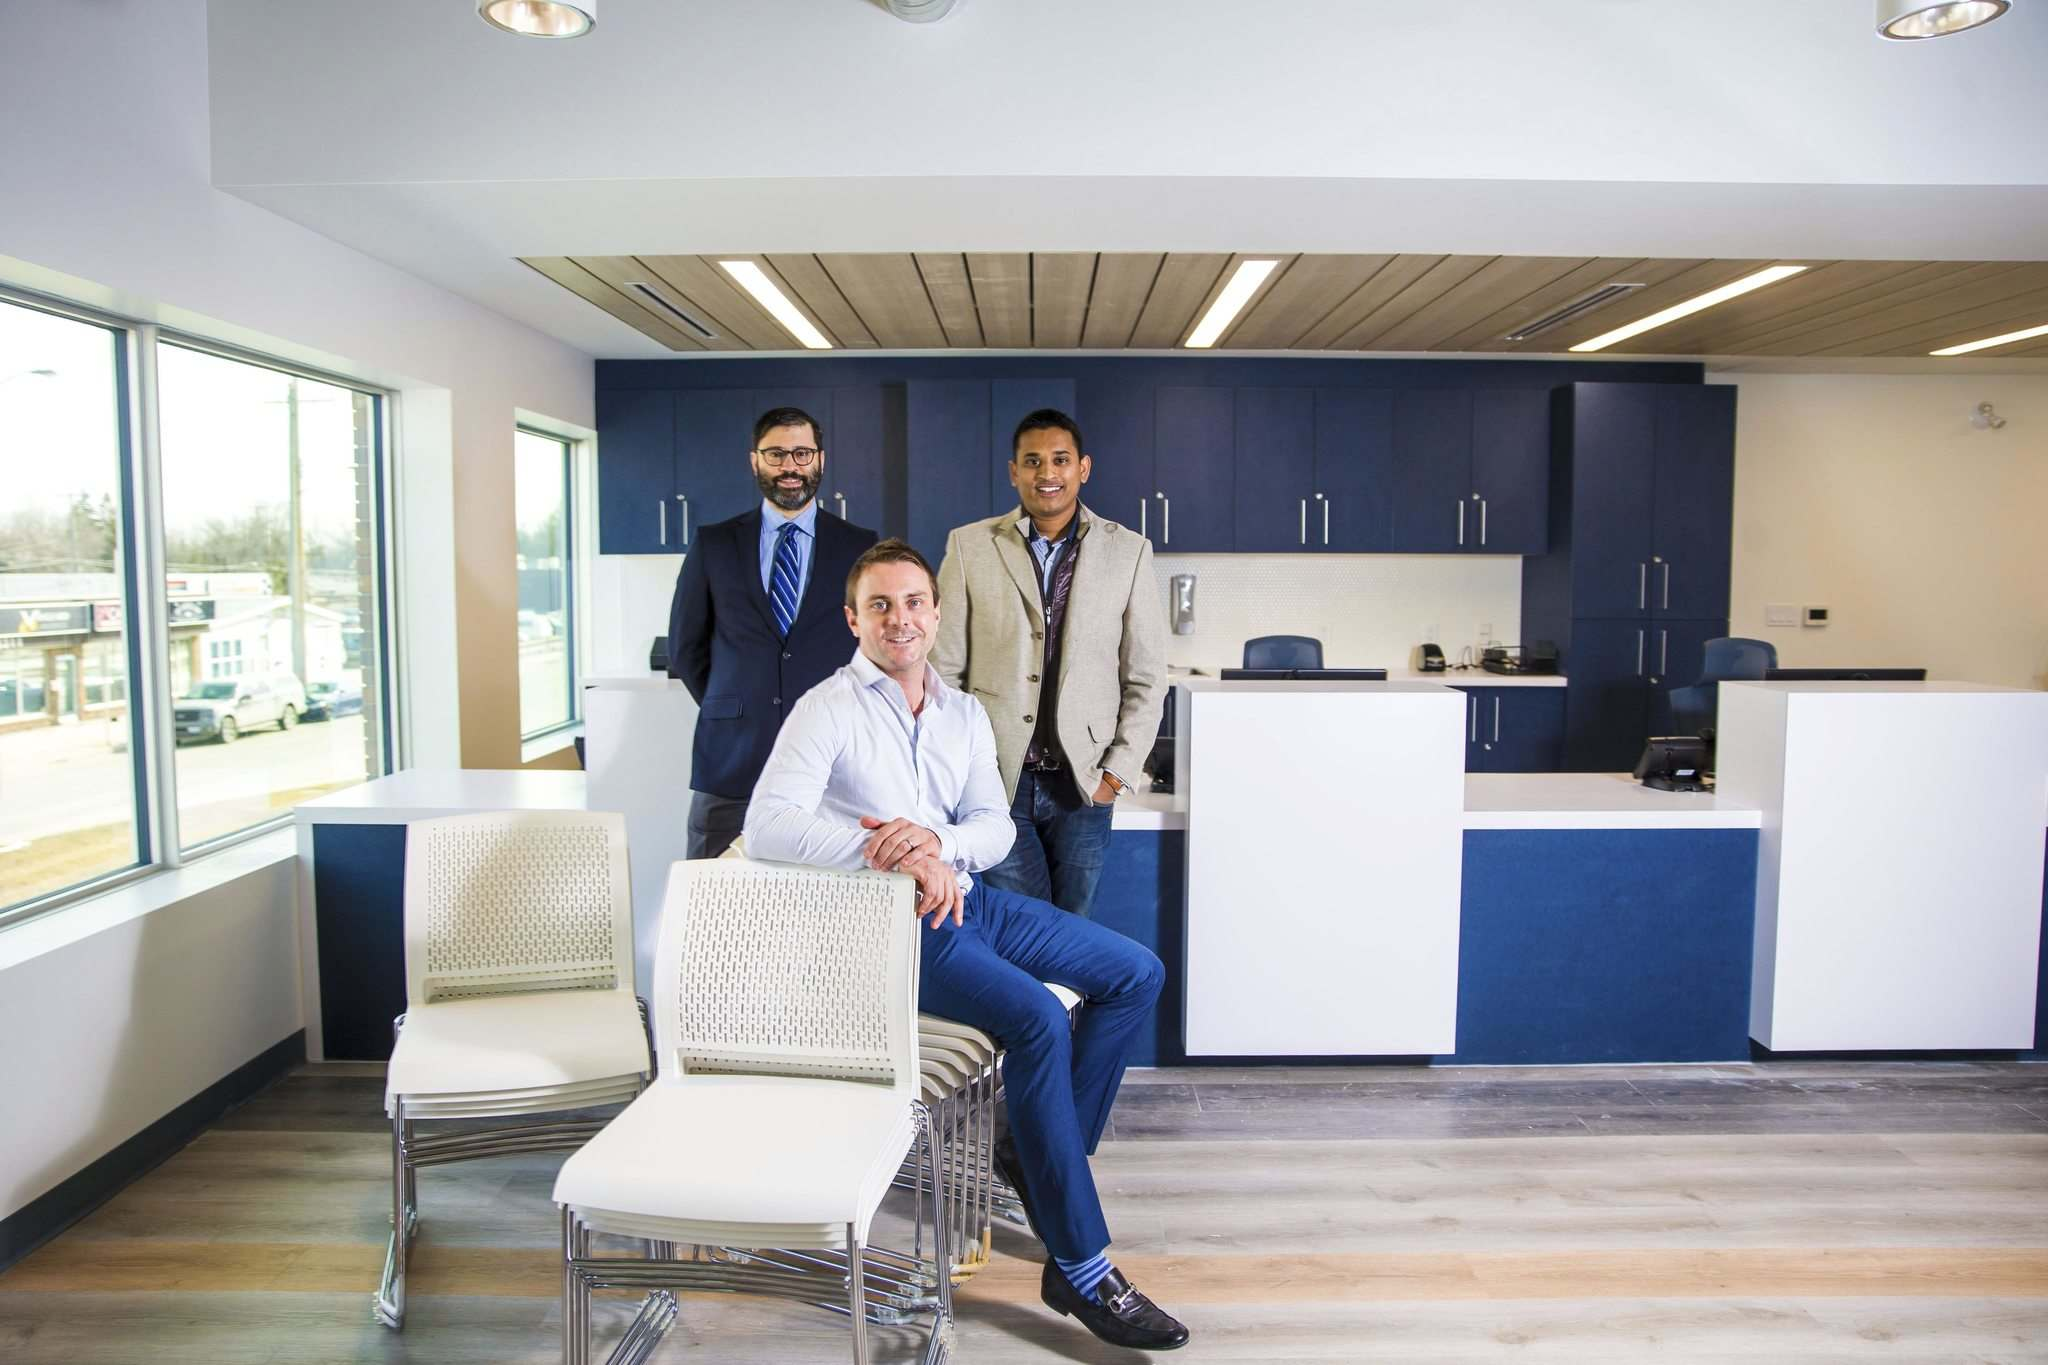 PHOTOS BY MIKAELA MACKENZIE / WINNIPEG FREE PRESS</p><p>Dr. Sacha Rehsia (from left), Darren Murphy of Northway Pharmacy and Dr. Andy Dandekar show off the renovated reception area at the Charleswood Medical Clinic. </p>